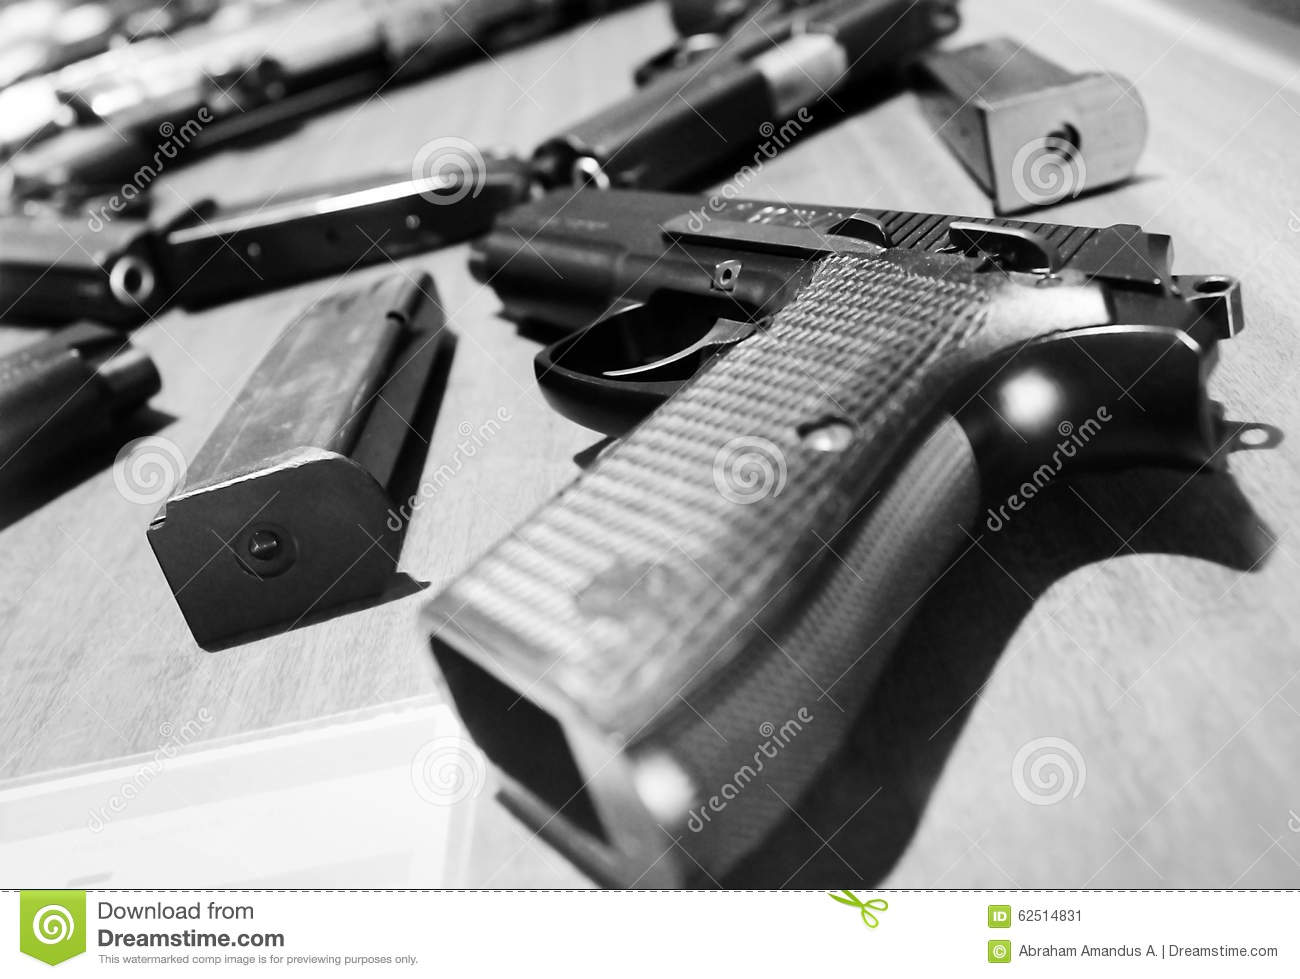 Semi automatic handguns or pistols and its magazines the gun at the near side is a pistol which made in indonesia black and white photography